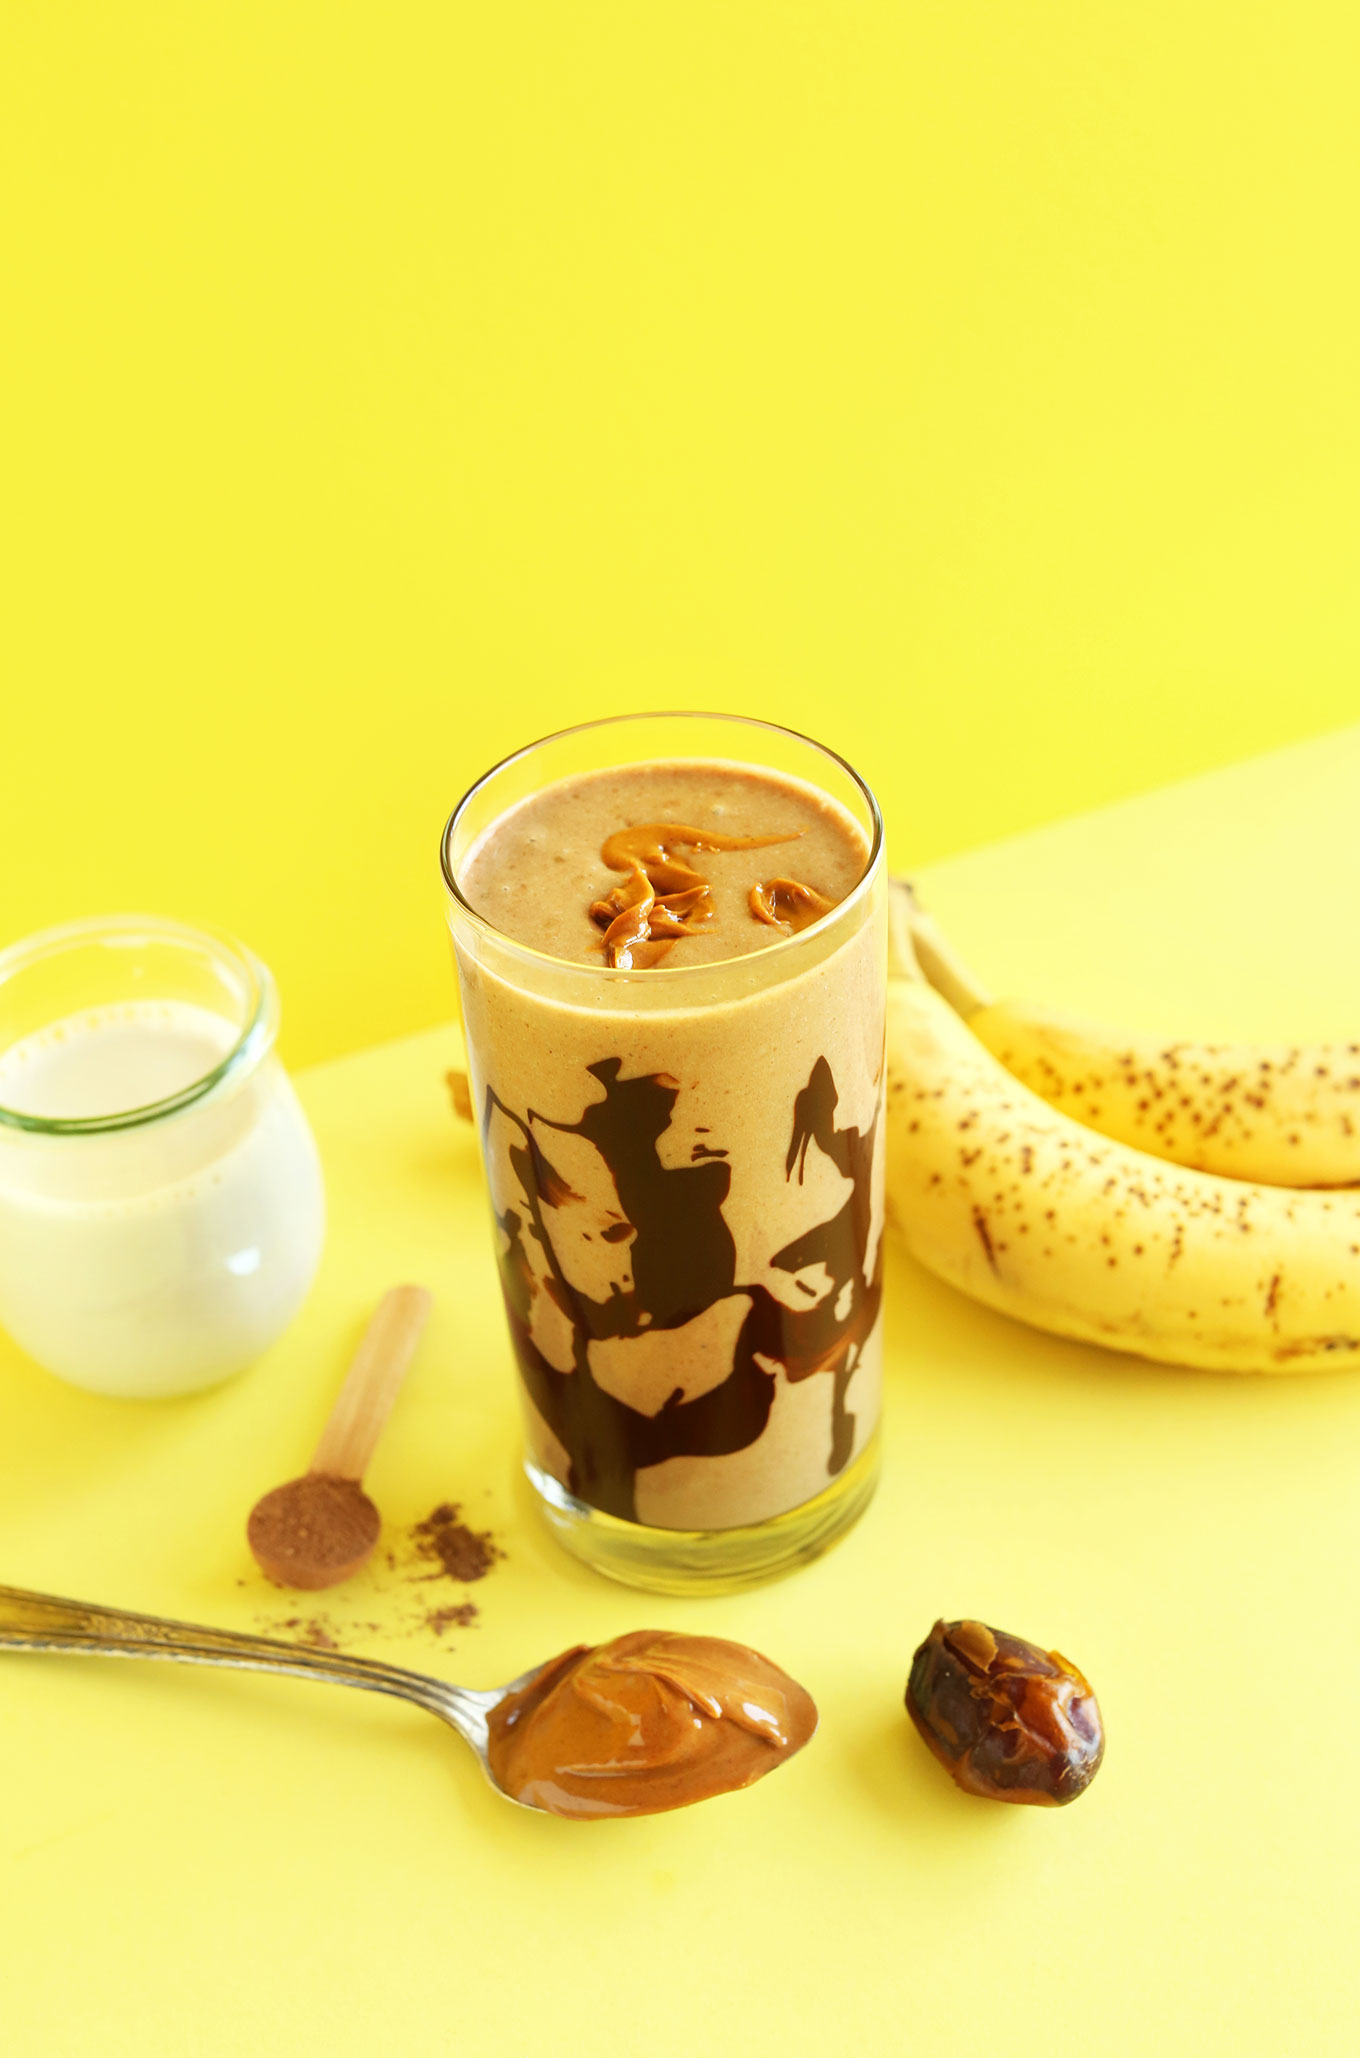 How To Make A Delicious Chocolate Protein Shake